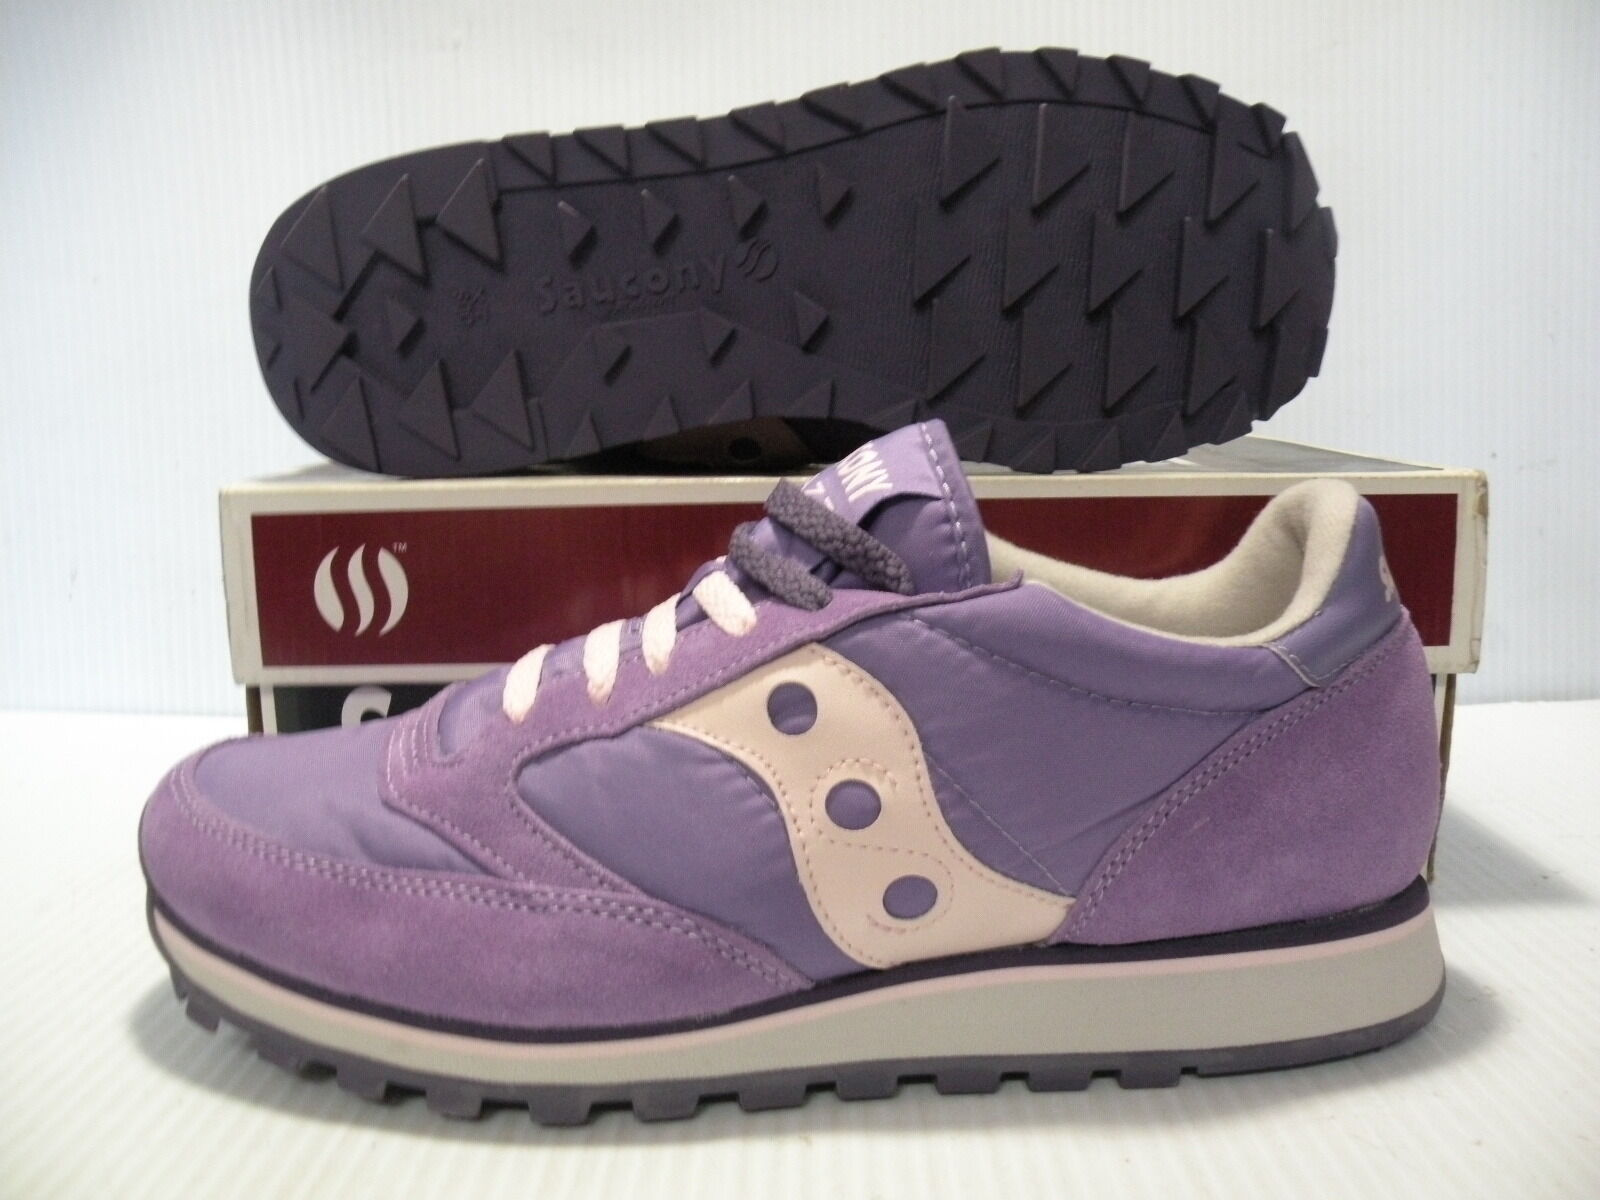 SAUCONY JAZZ S SERIES LOW SNEAKERS WOMEN SHOES PURPLE PINK 1785-8 SIZE 5.5 NEW